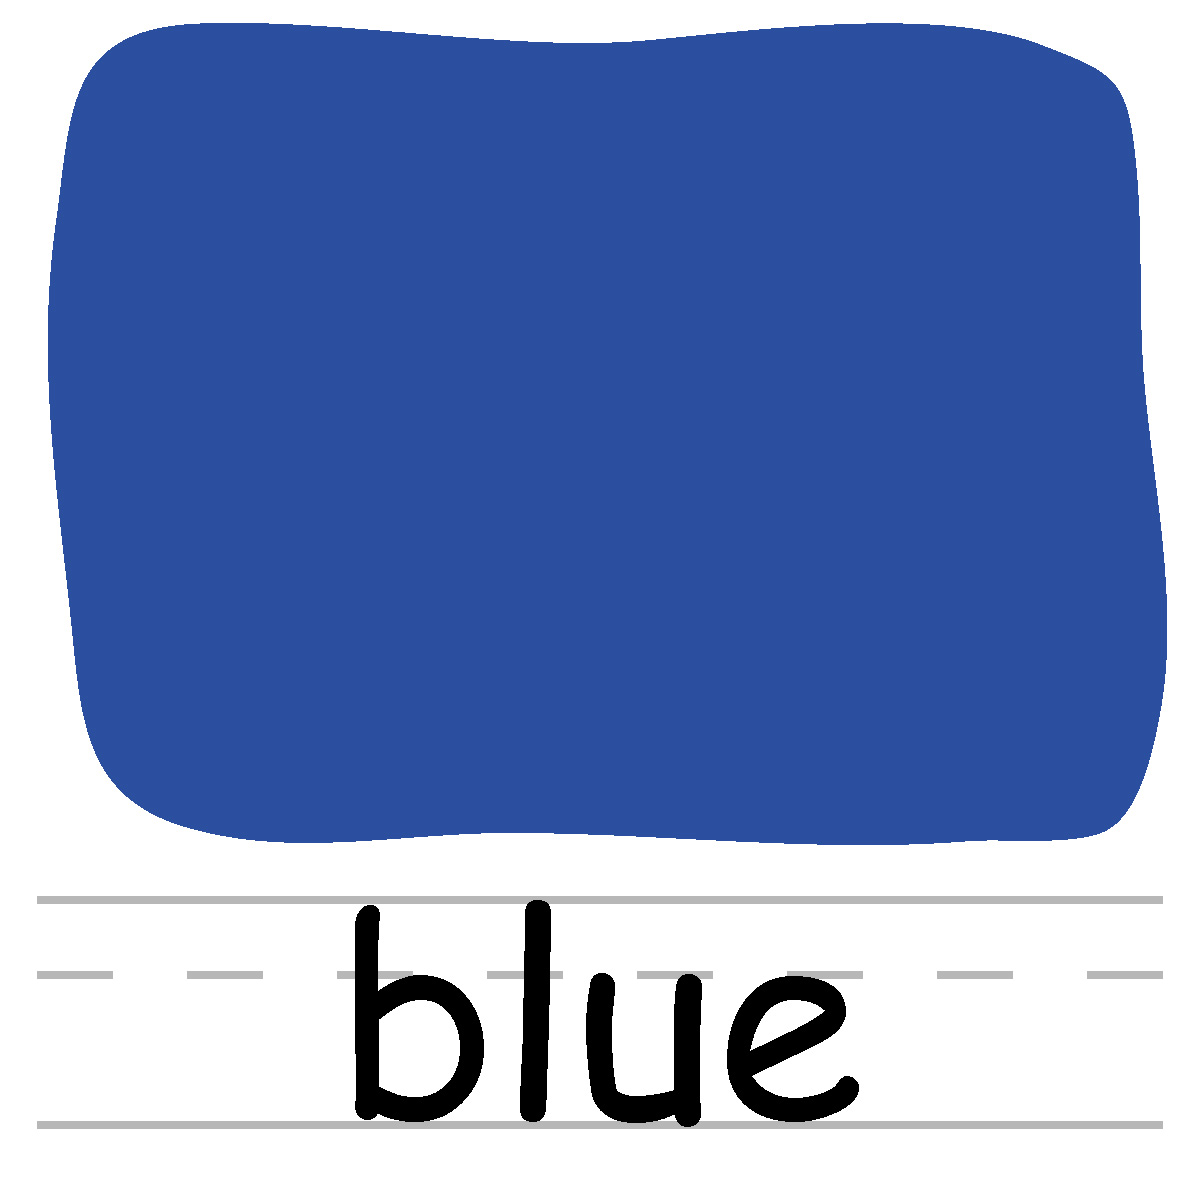 And blue clipart #9